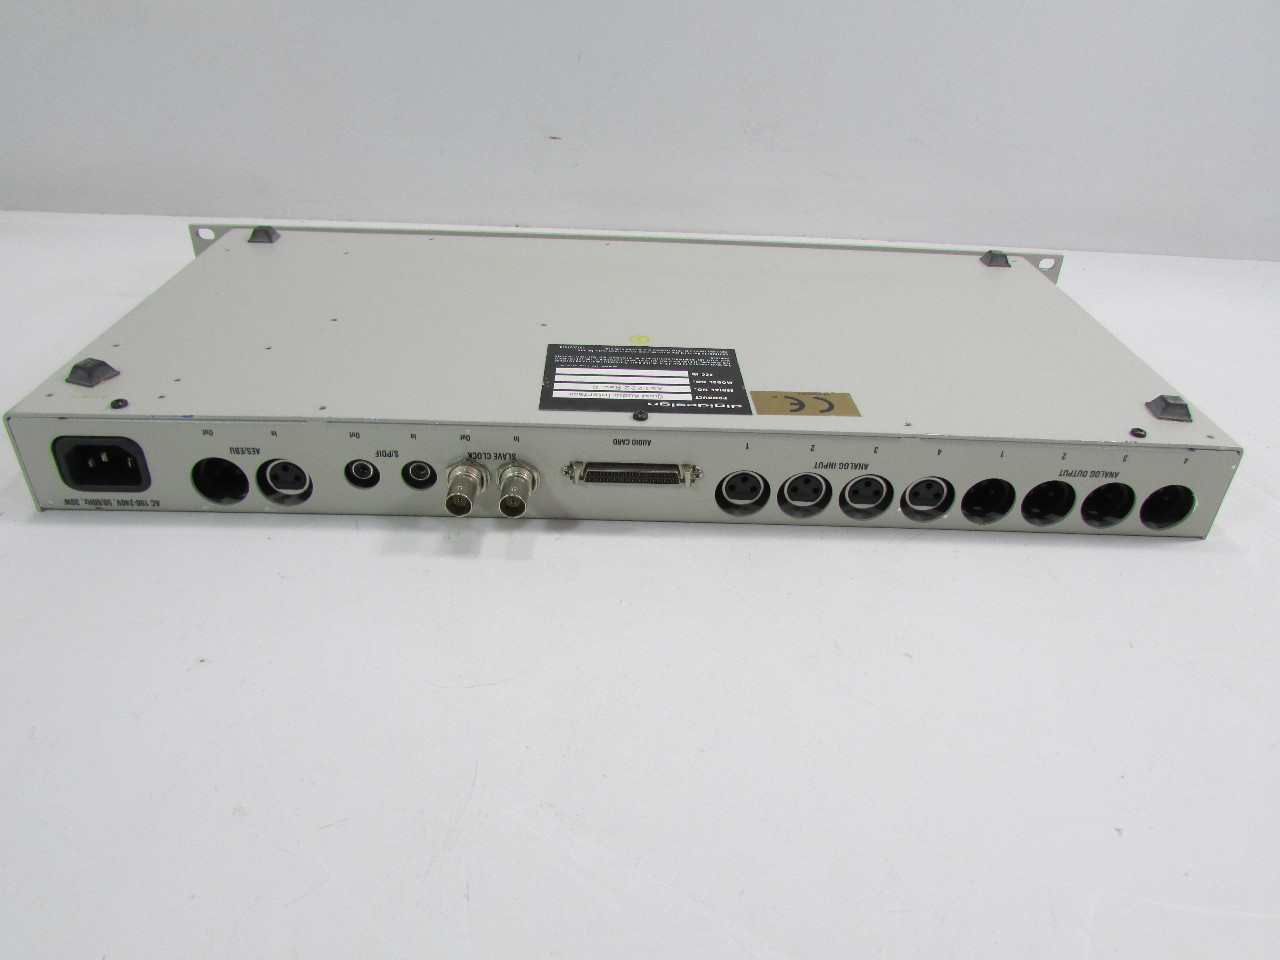 Consumer Electronics Imported From Abroad Digidesign Quad Audio Interface